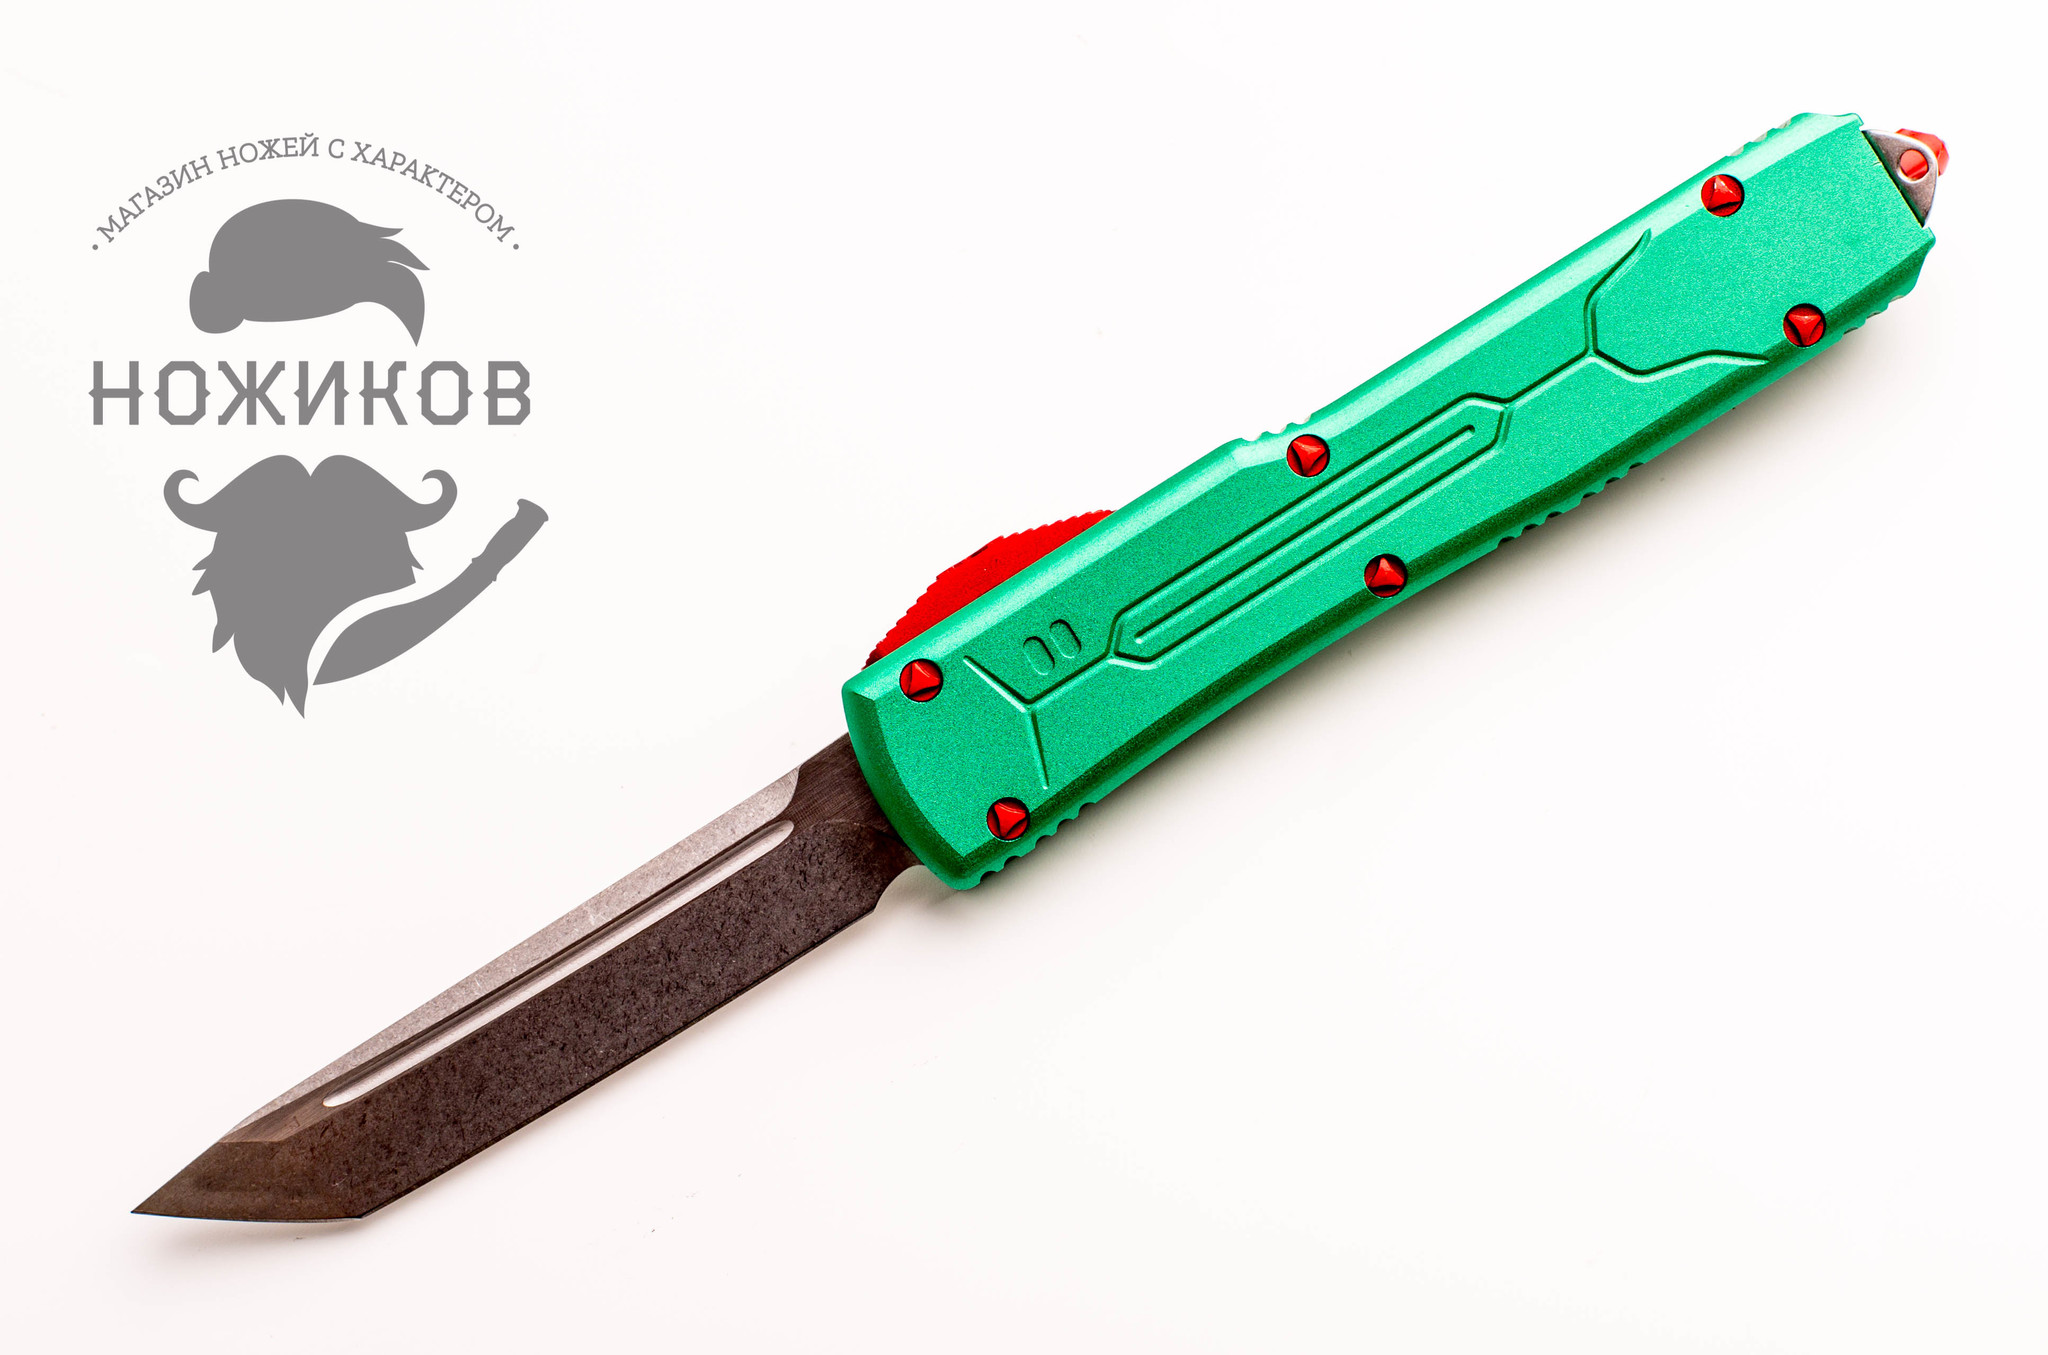 Нож Microtech UltraTech Green Replica, сталь D2 автоматический нож microtech troodon tanto replica